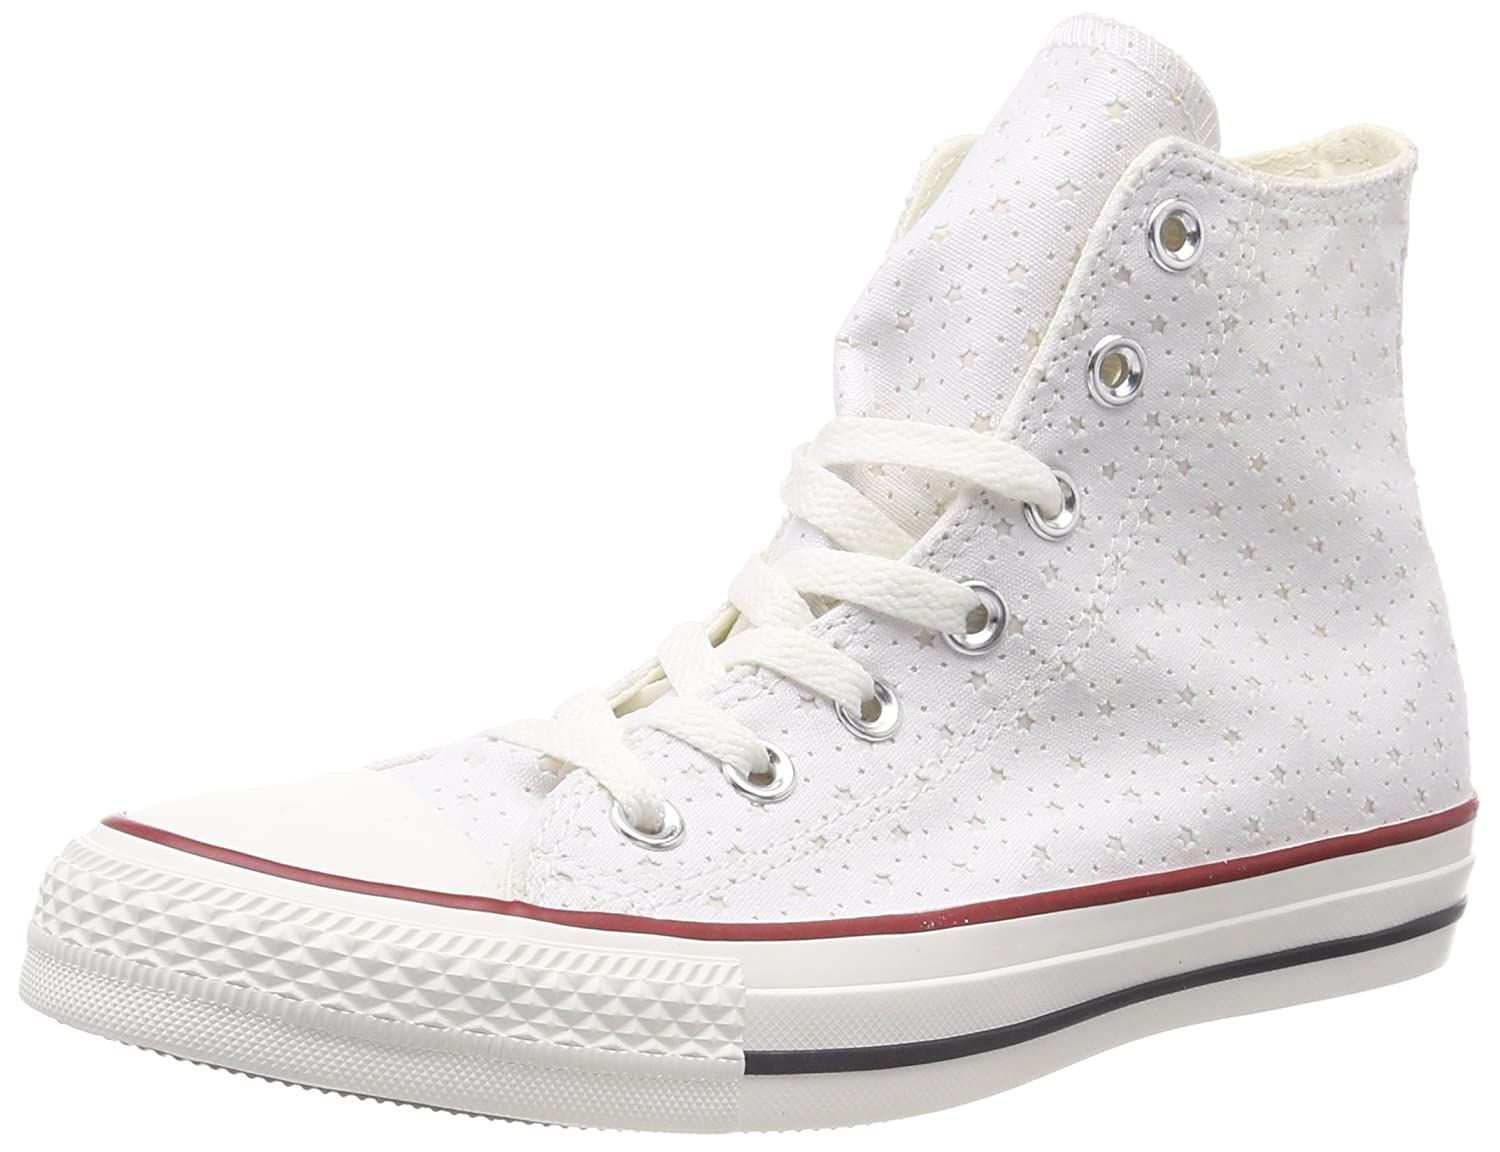 TALLA 42.5 EU. Converse CTAS Hi White/Garnet/Athletic Navy, Zapatillas Altas Unisex Adulto